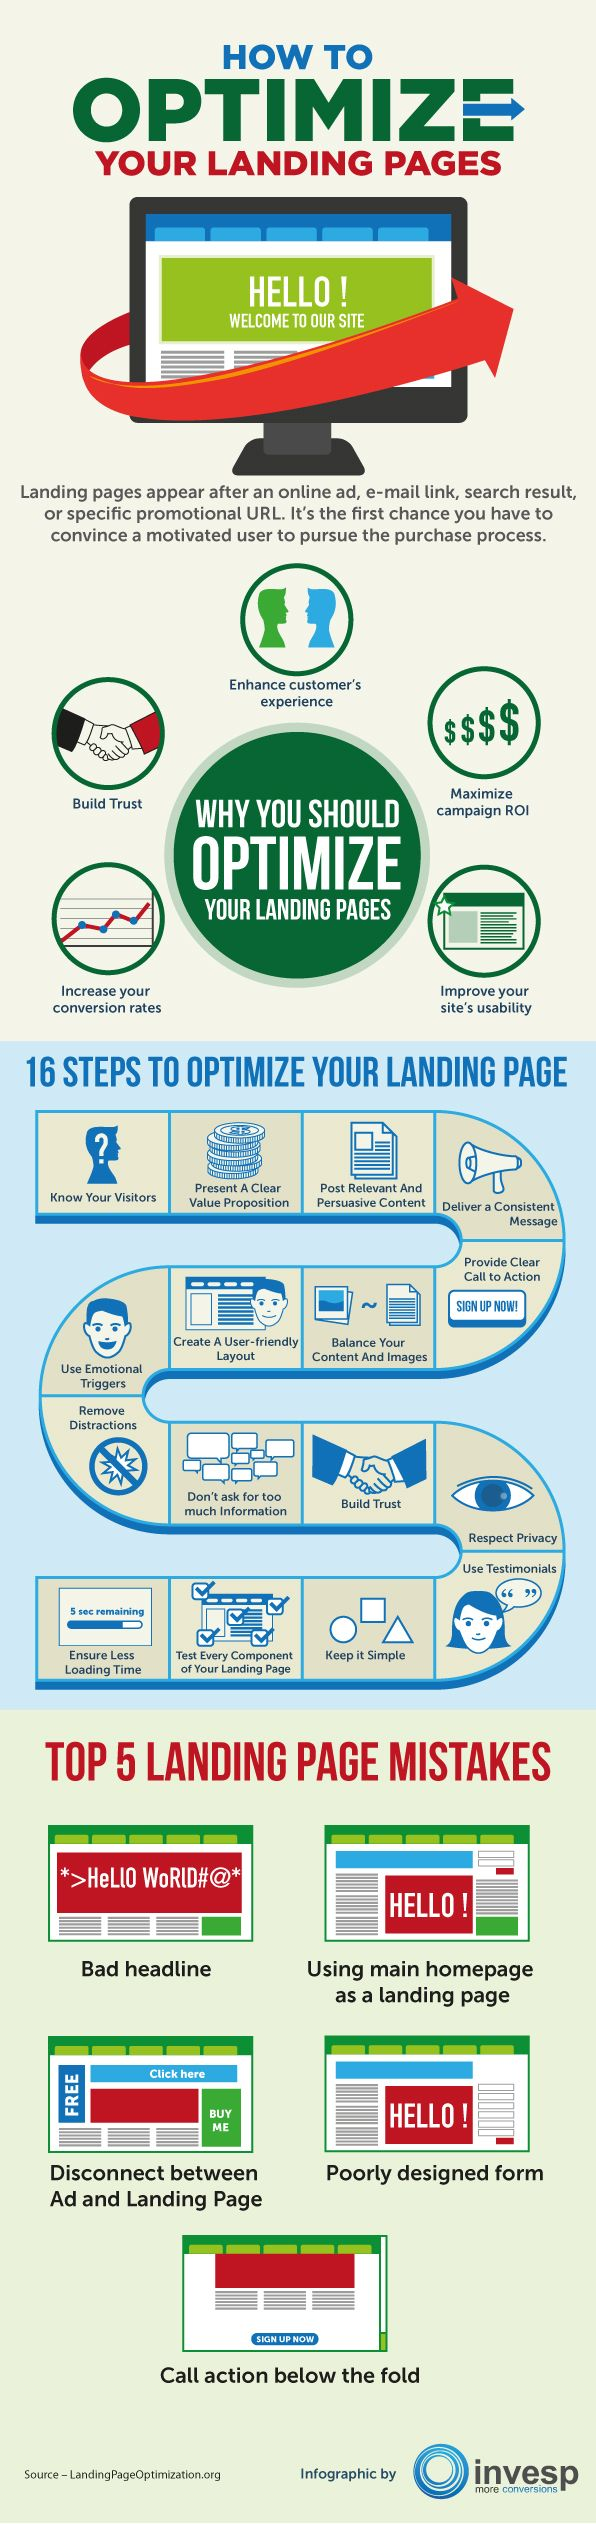 10 Copywriting Tips for a More Effective Landing Page. Infographic